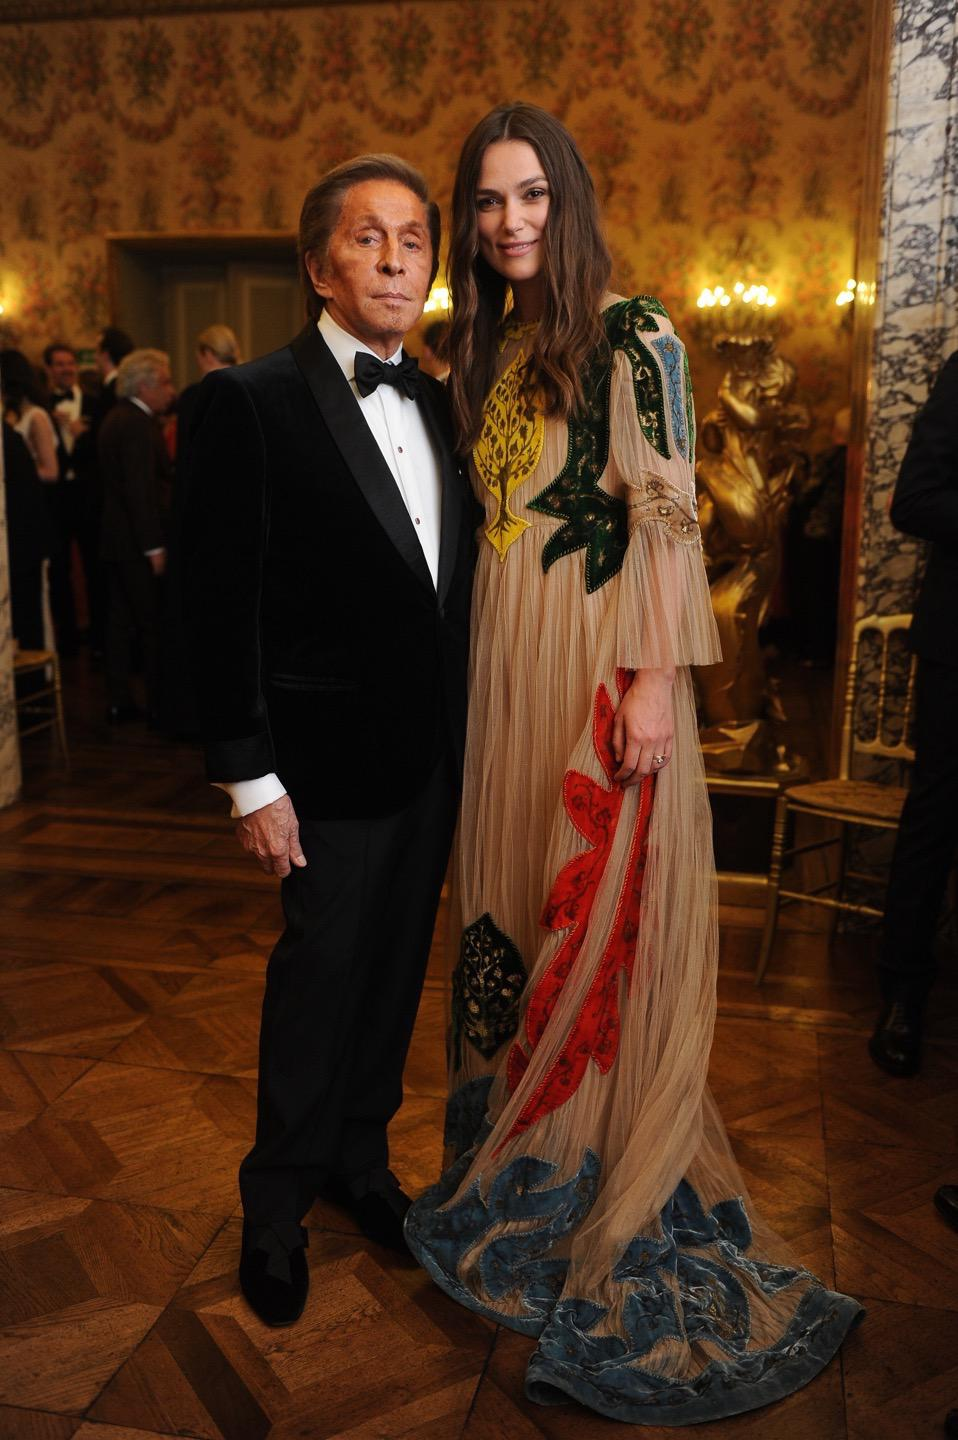 Gala Dinner hosted by Valentino Garavani to celebrate La Traviata